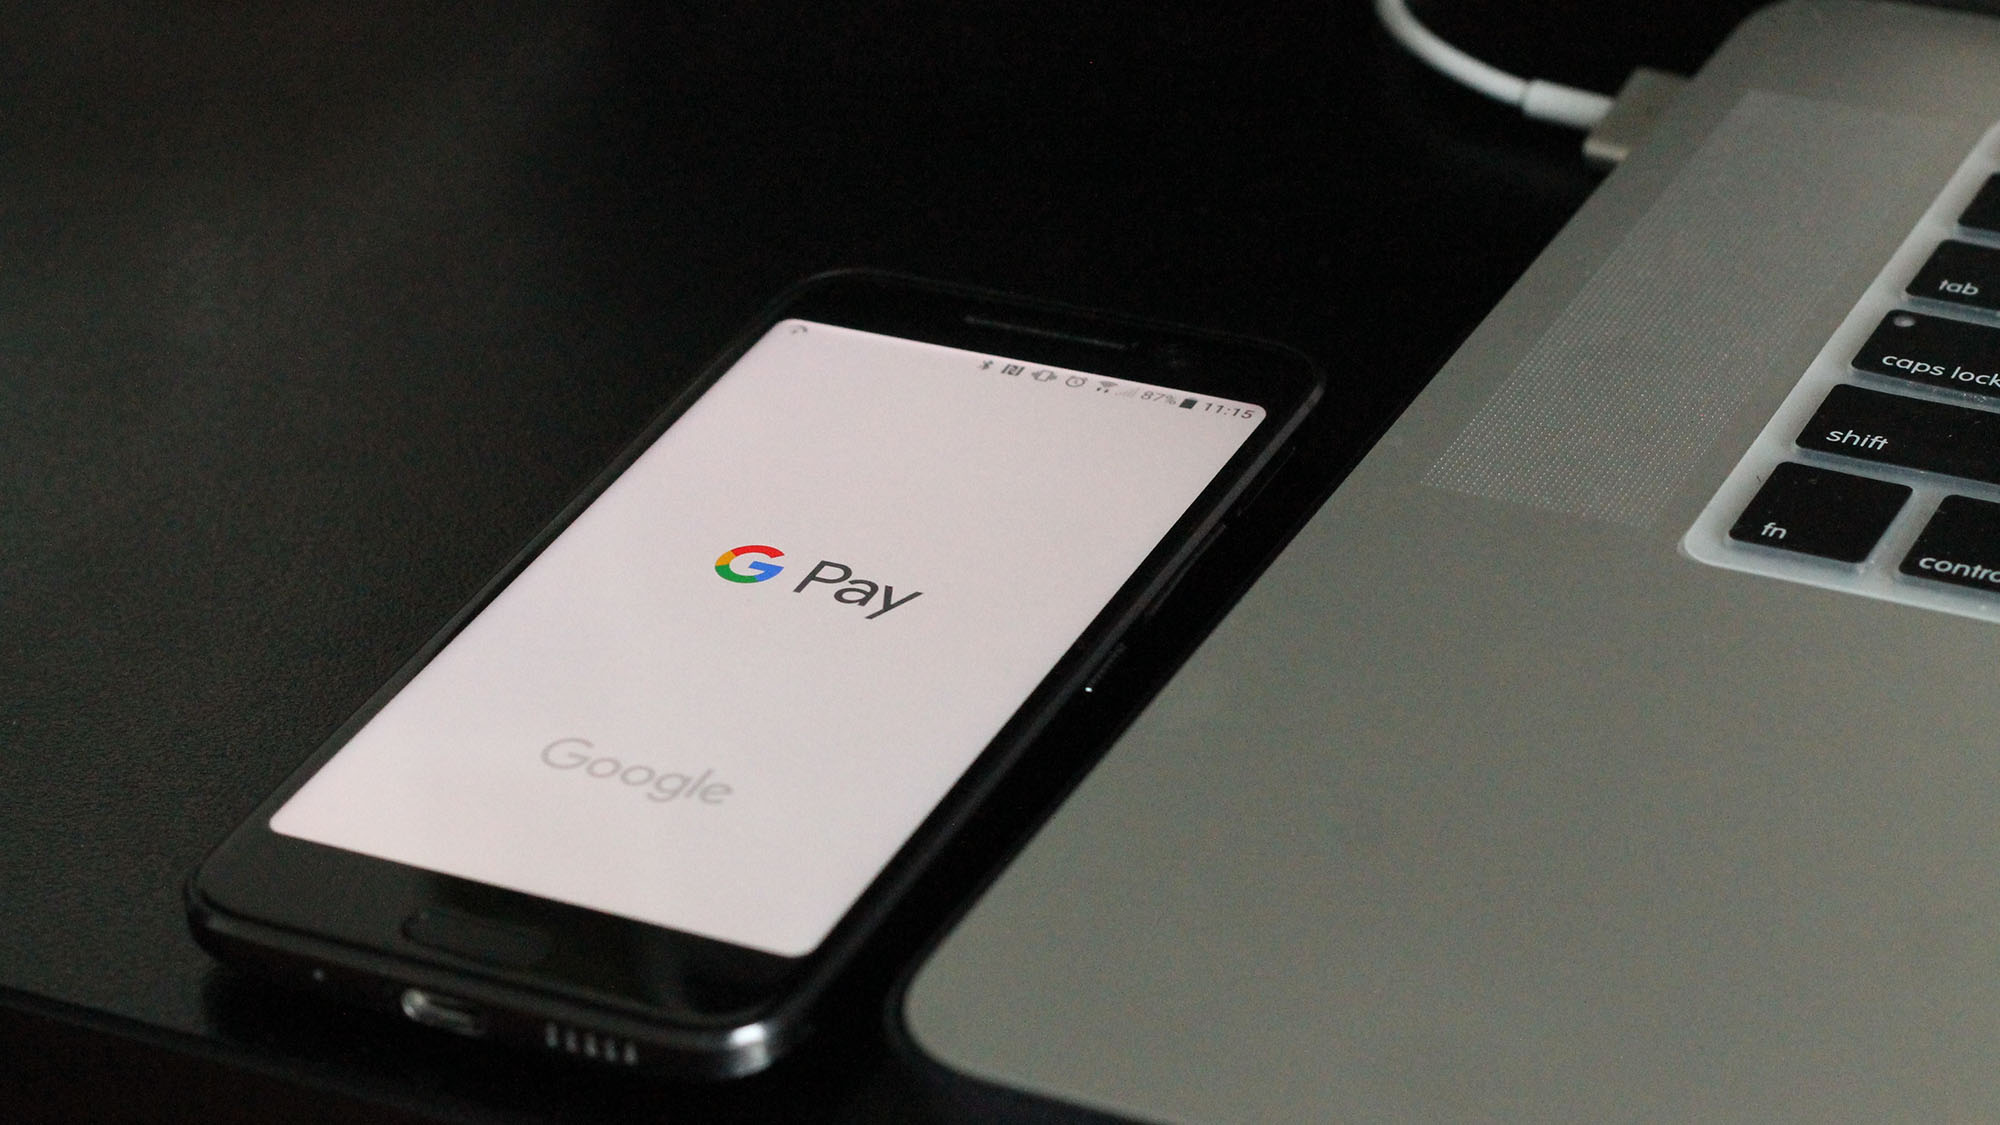 Now Google wants to get into banking too